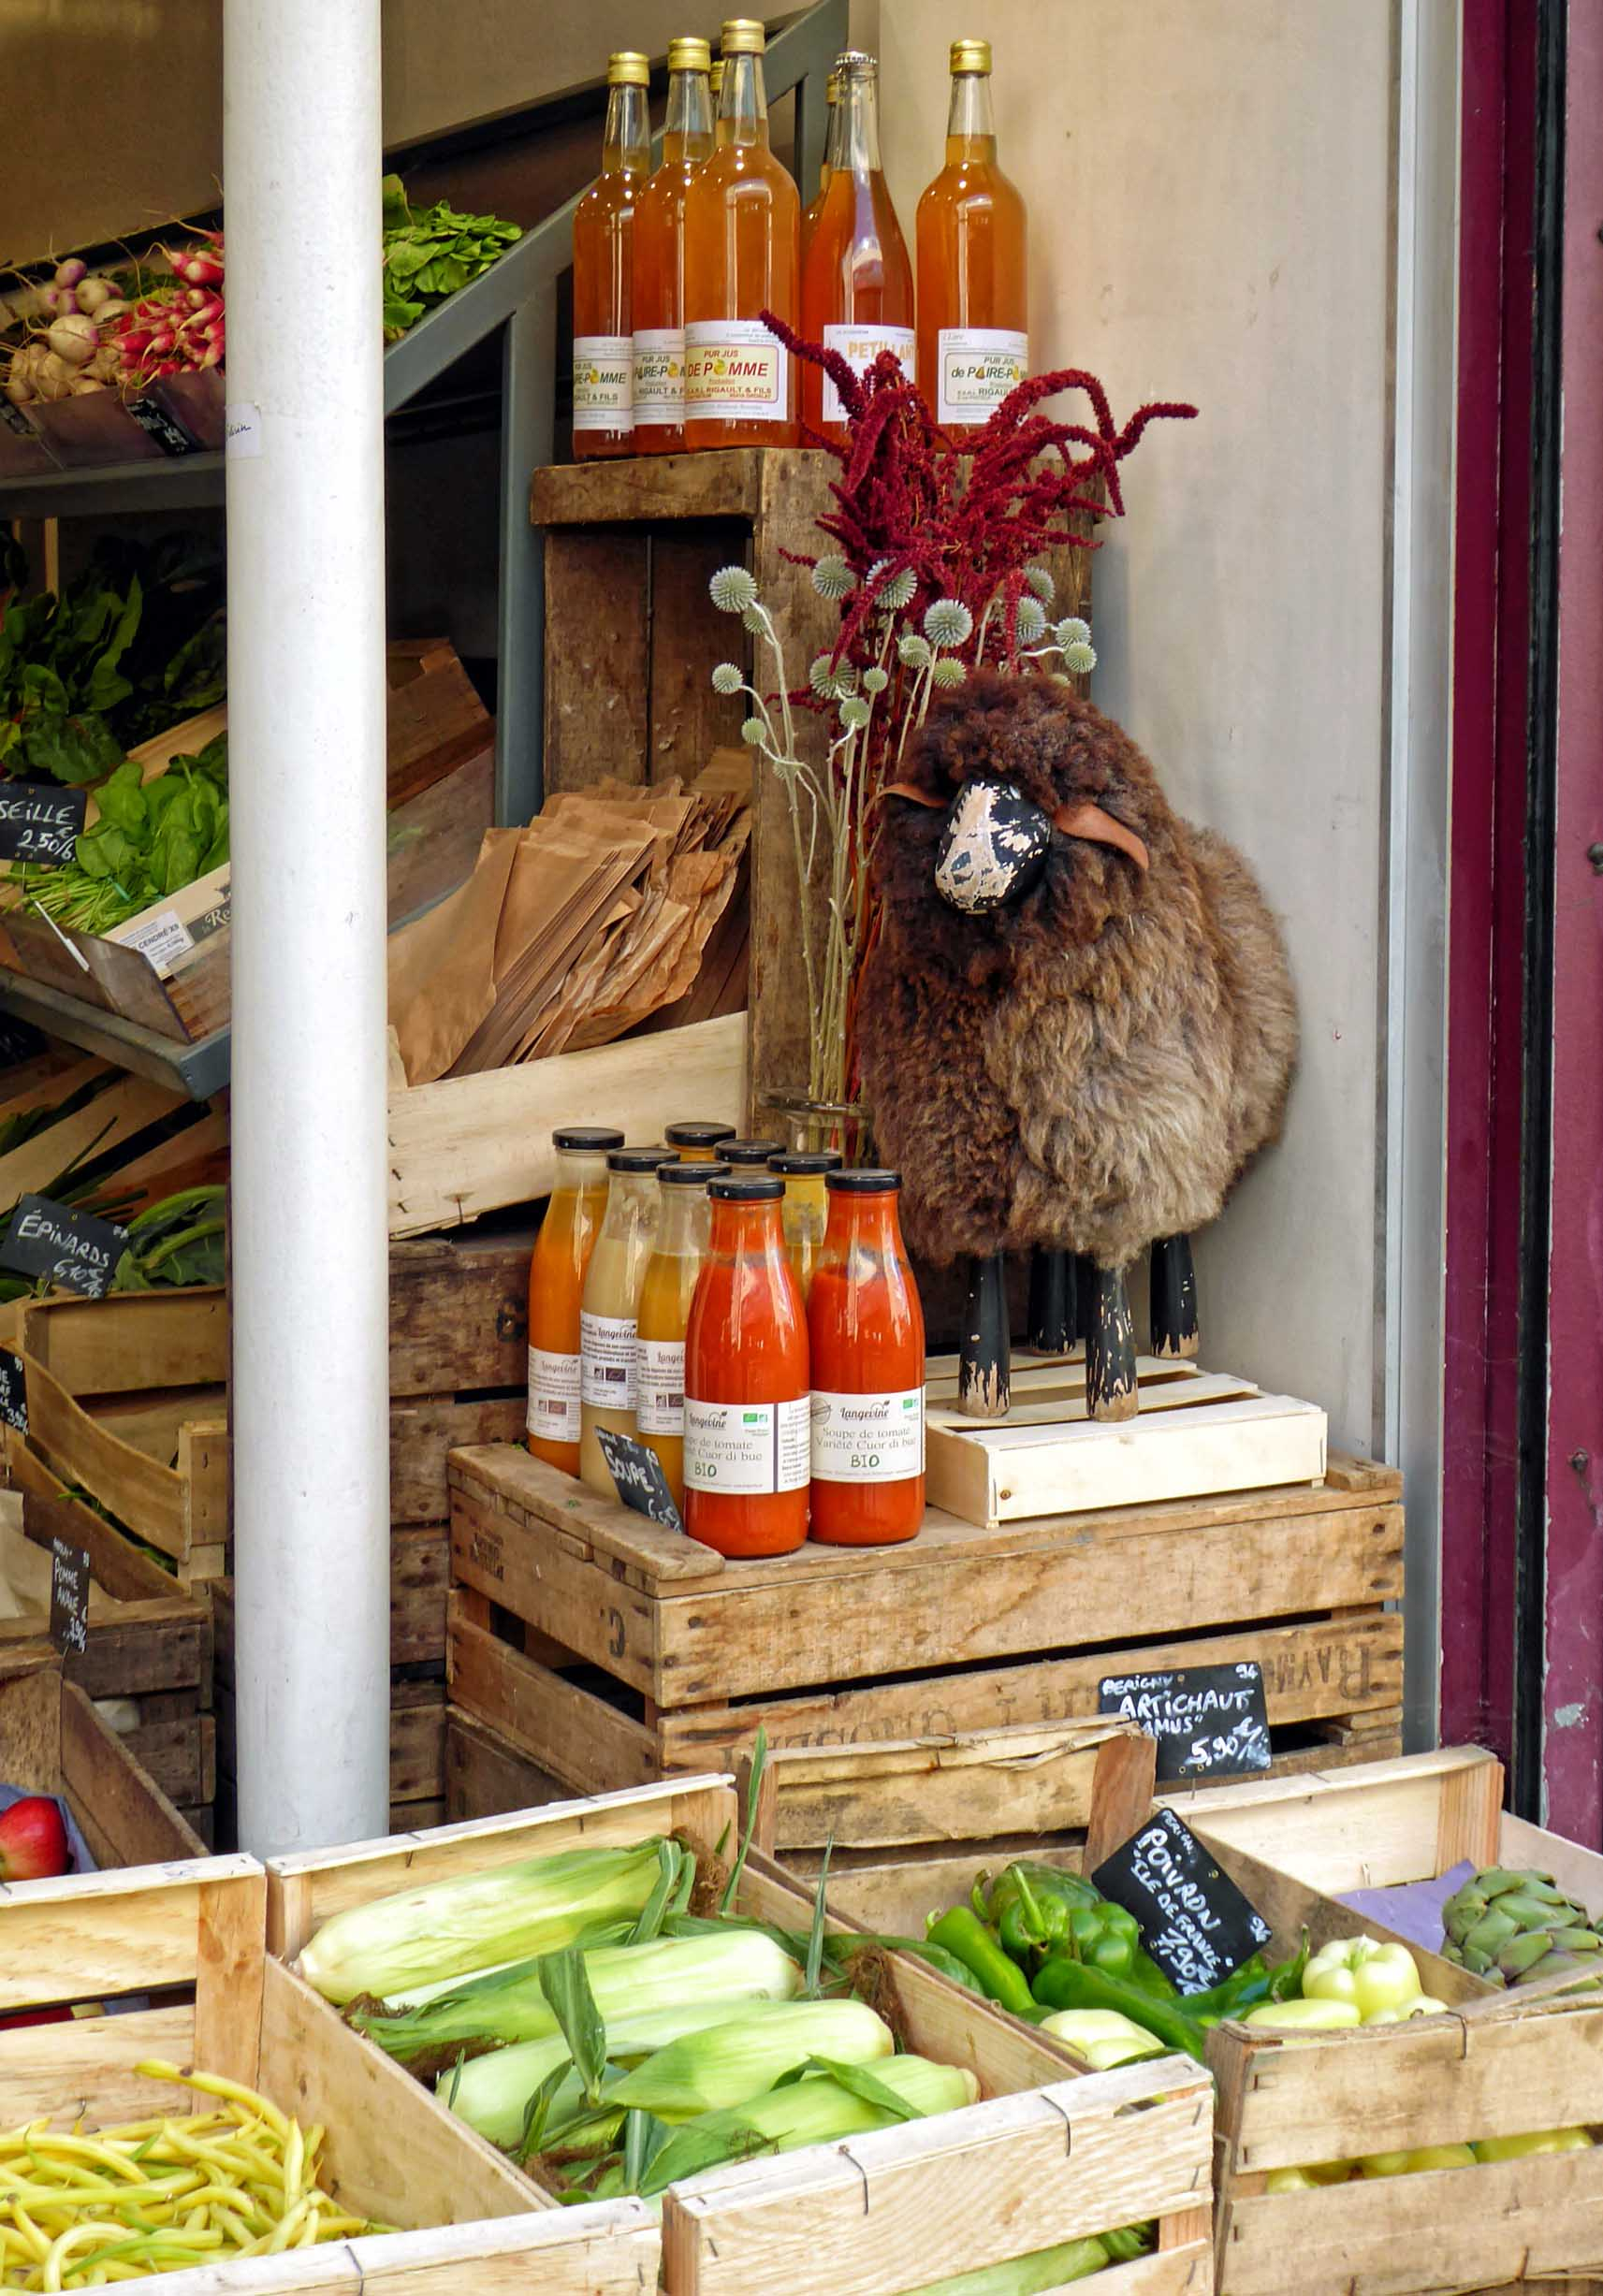 Vegetables outside a shop with a small model sheep